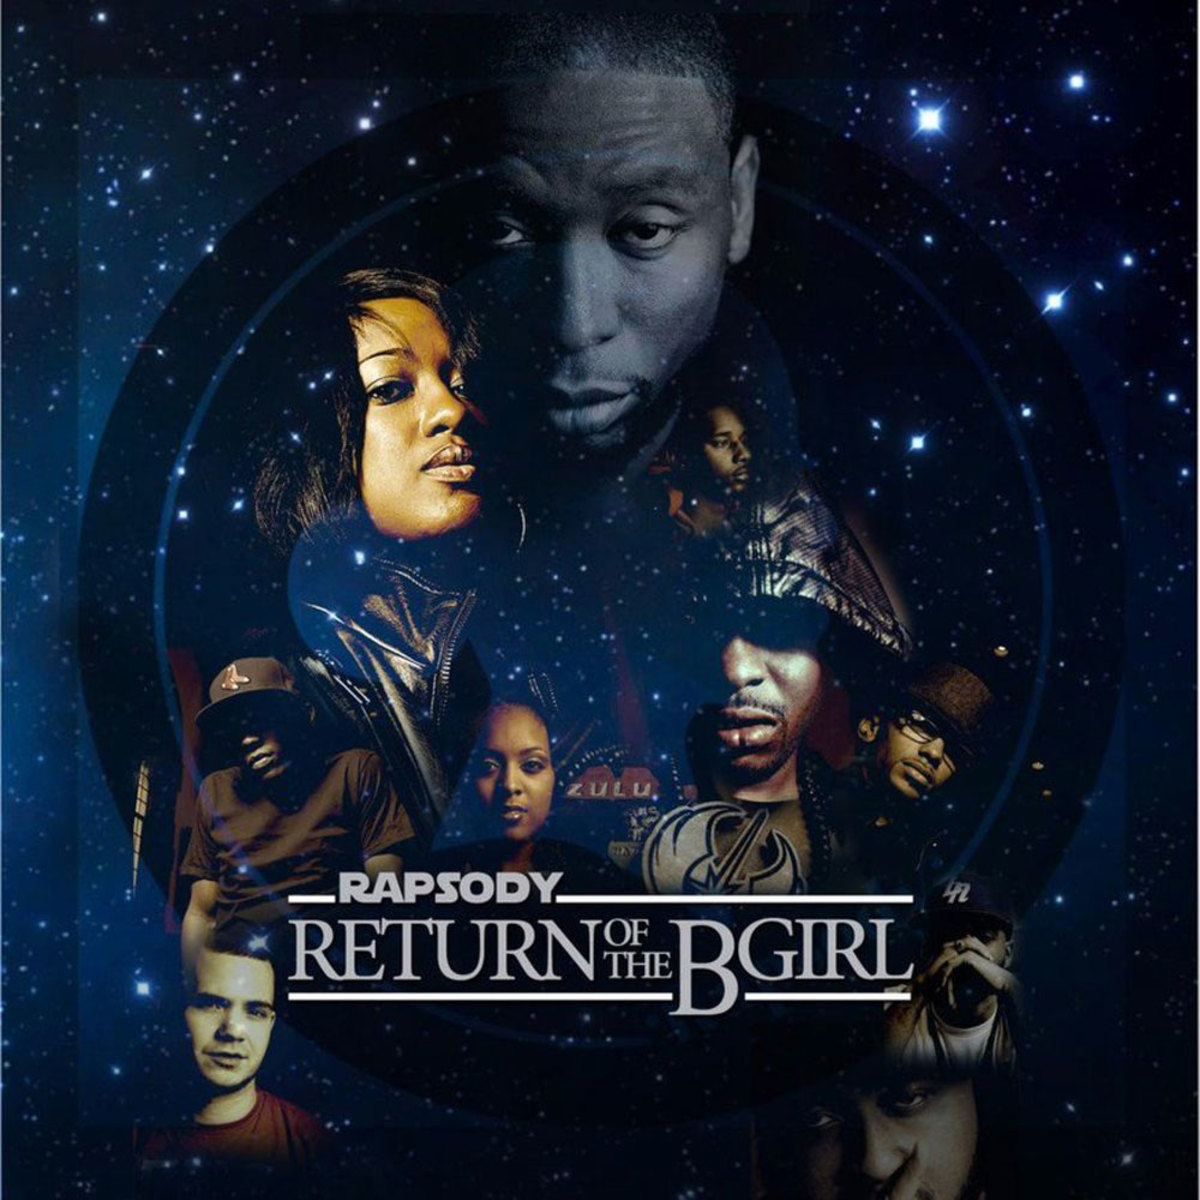 rapsody-return-of-the-b-girl